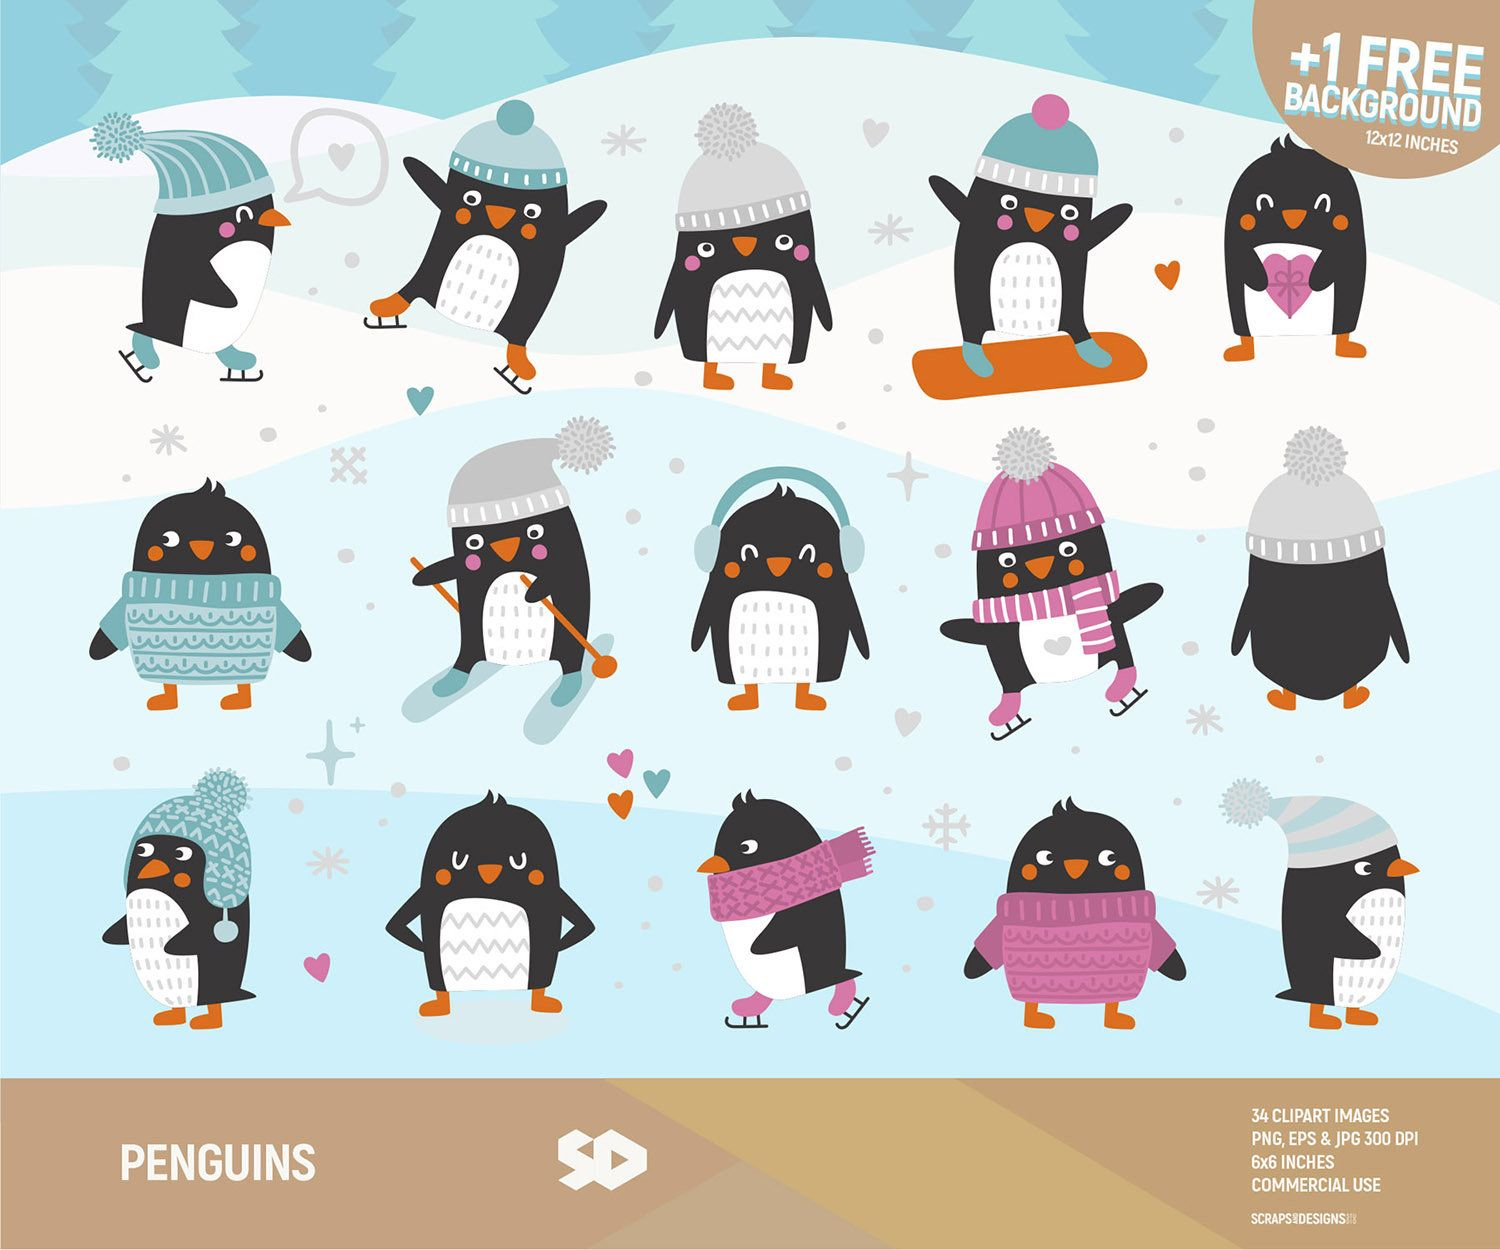 medium resolution of penguins clipart penguin clip art winter clipart snow background scarfs hats snowflakes ice skate ski snowboard commercial use